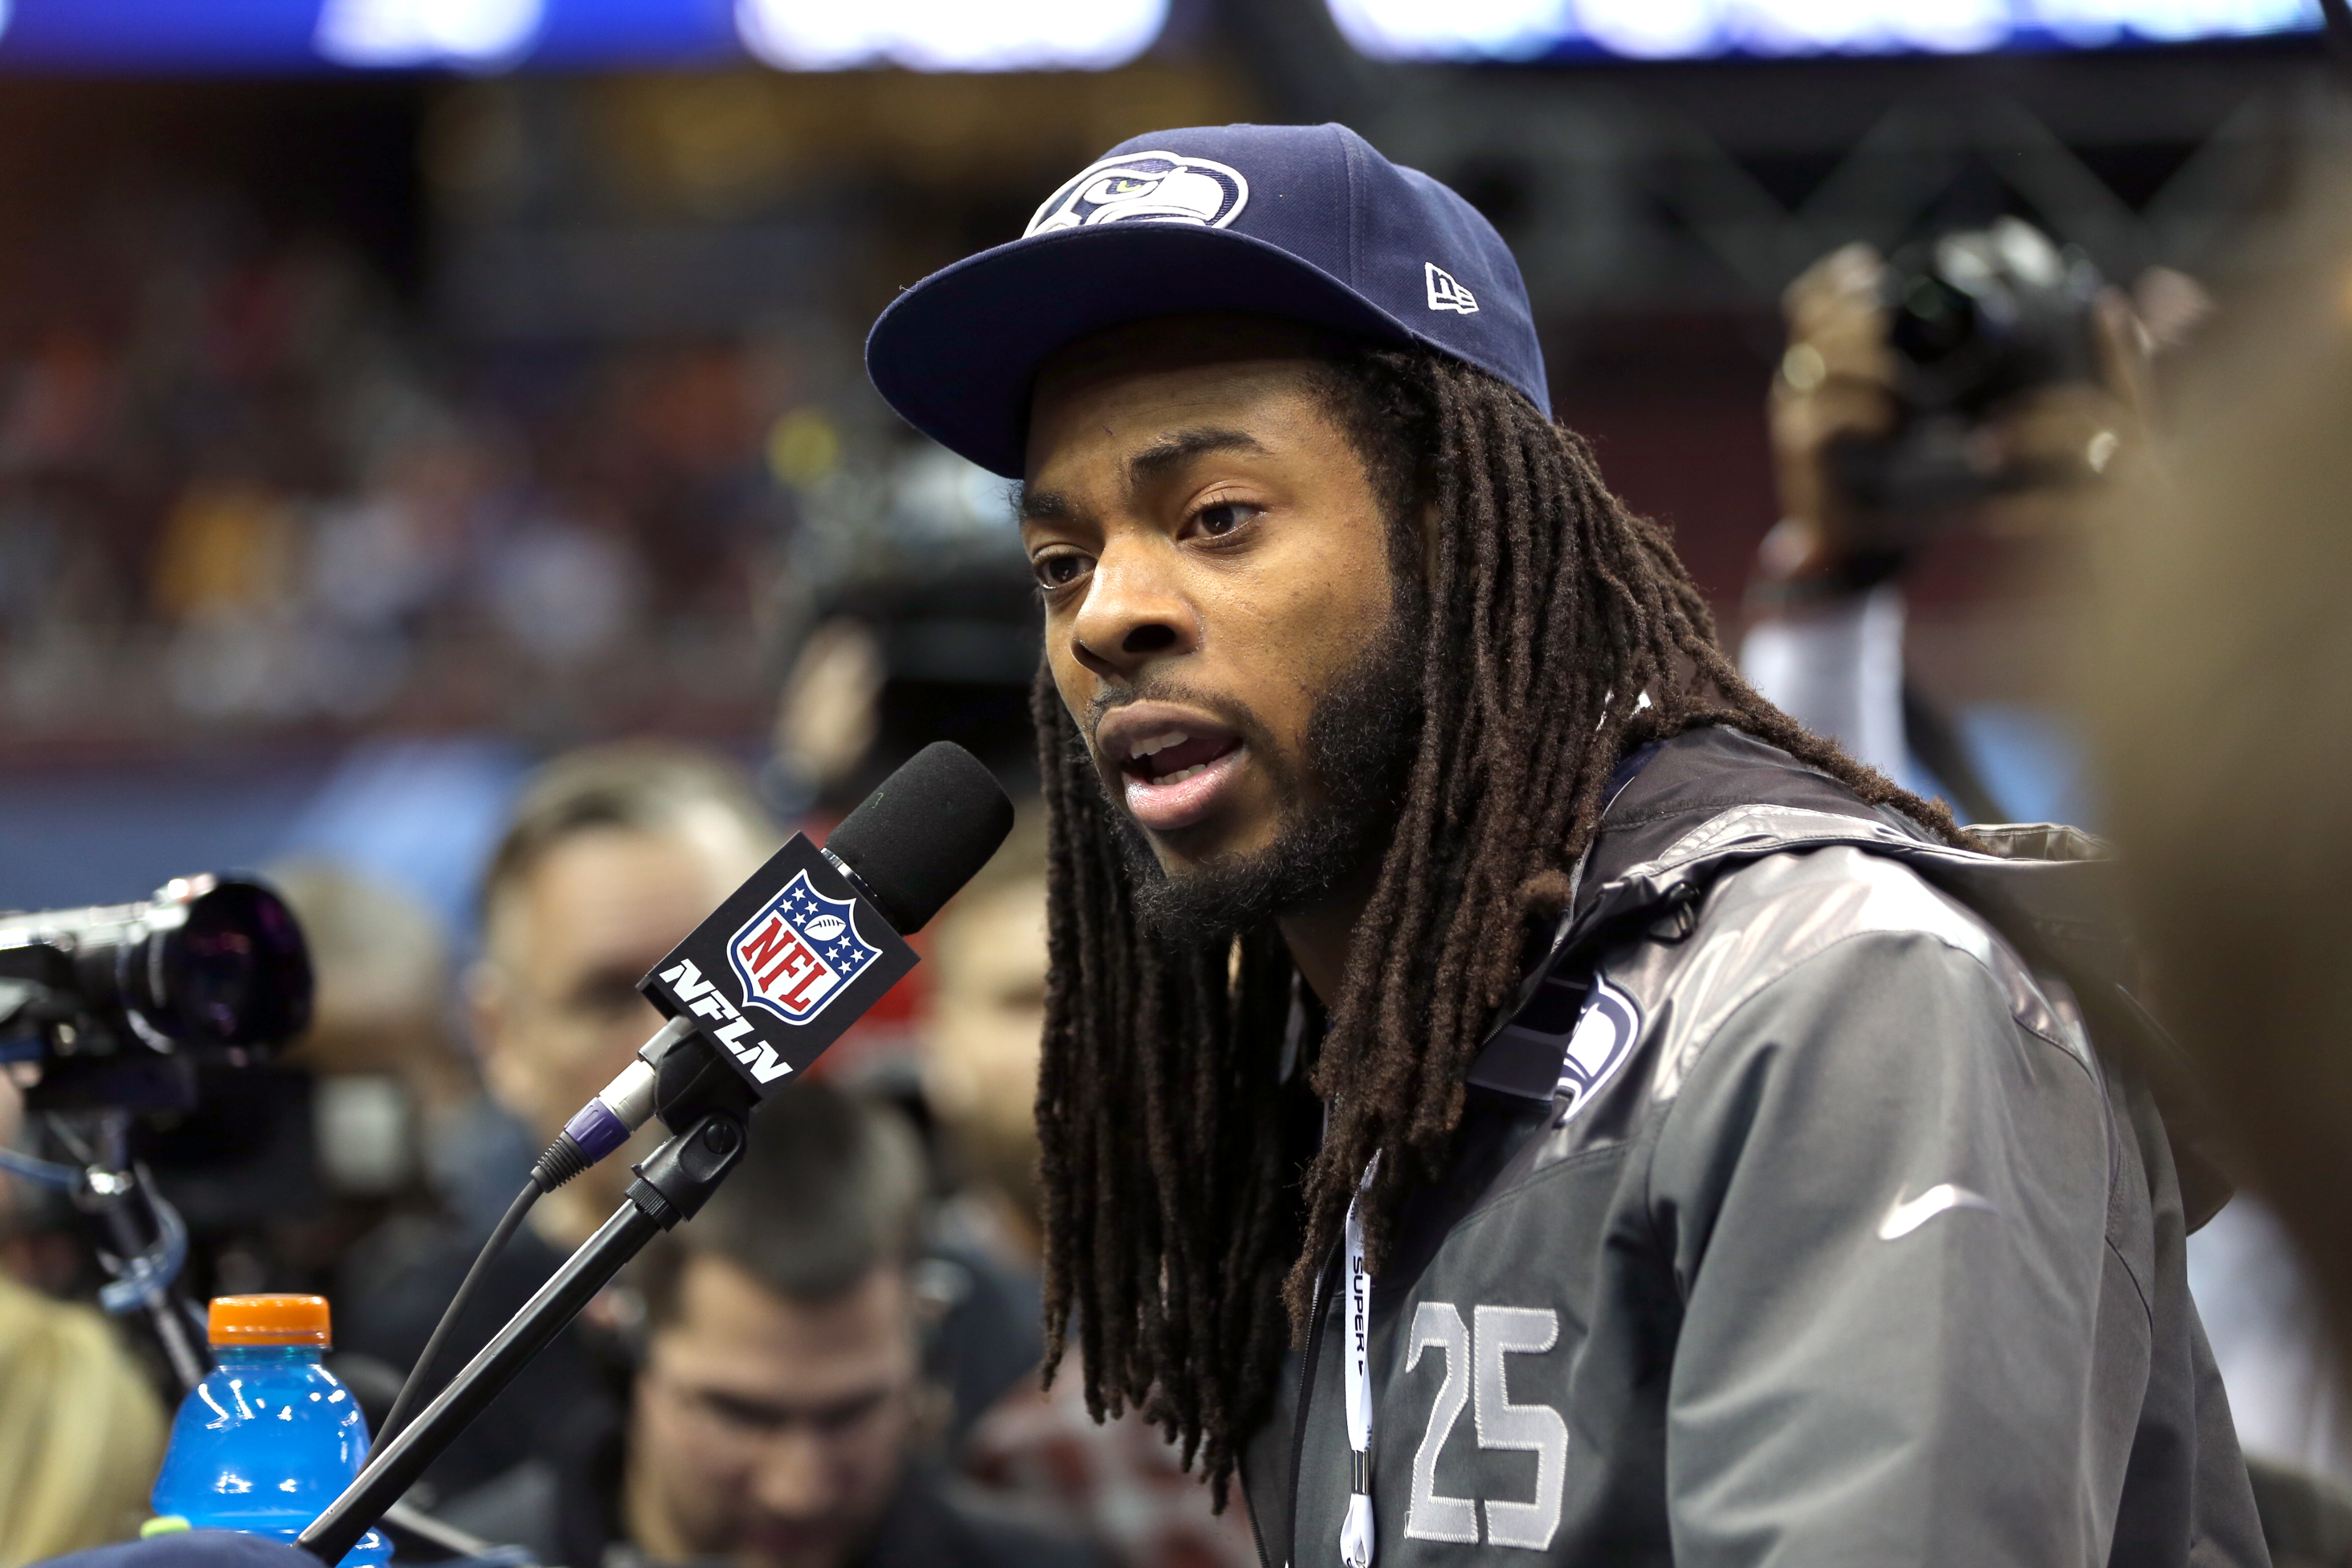 Seattle Seahawks cornerback Richard Sherman (25) answers questions from the media during the Super Bowl XLVIII Media Day at the Prudential Center on Tuesday, January 28, 2014 in Newark, NJ. (Ben Liebenberg/NFL)